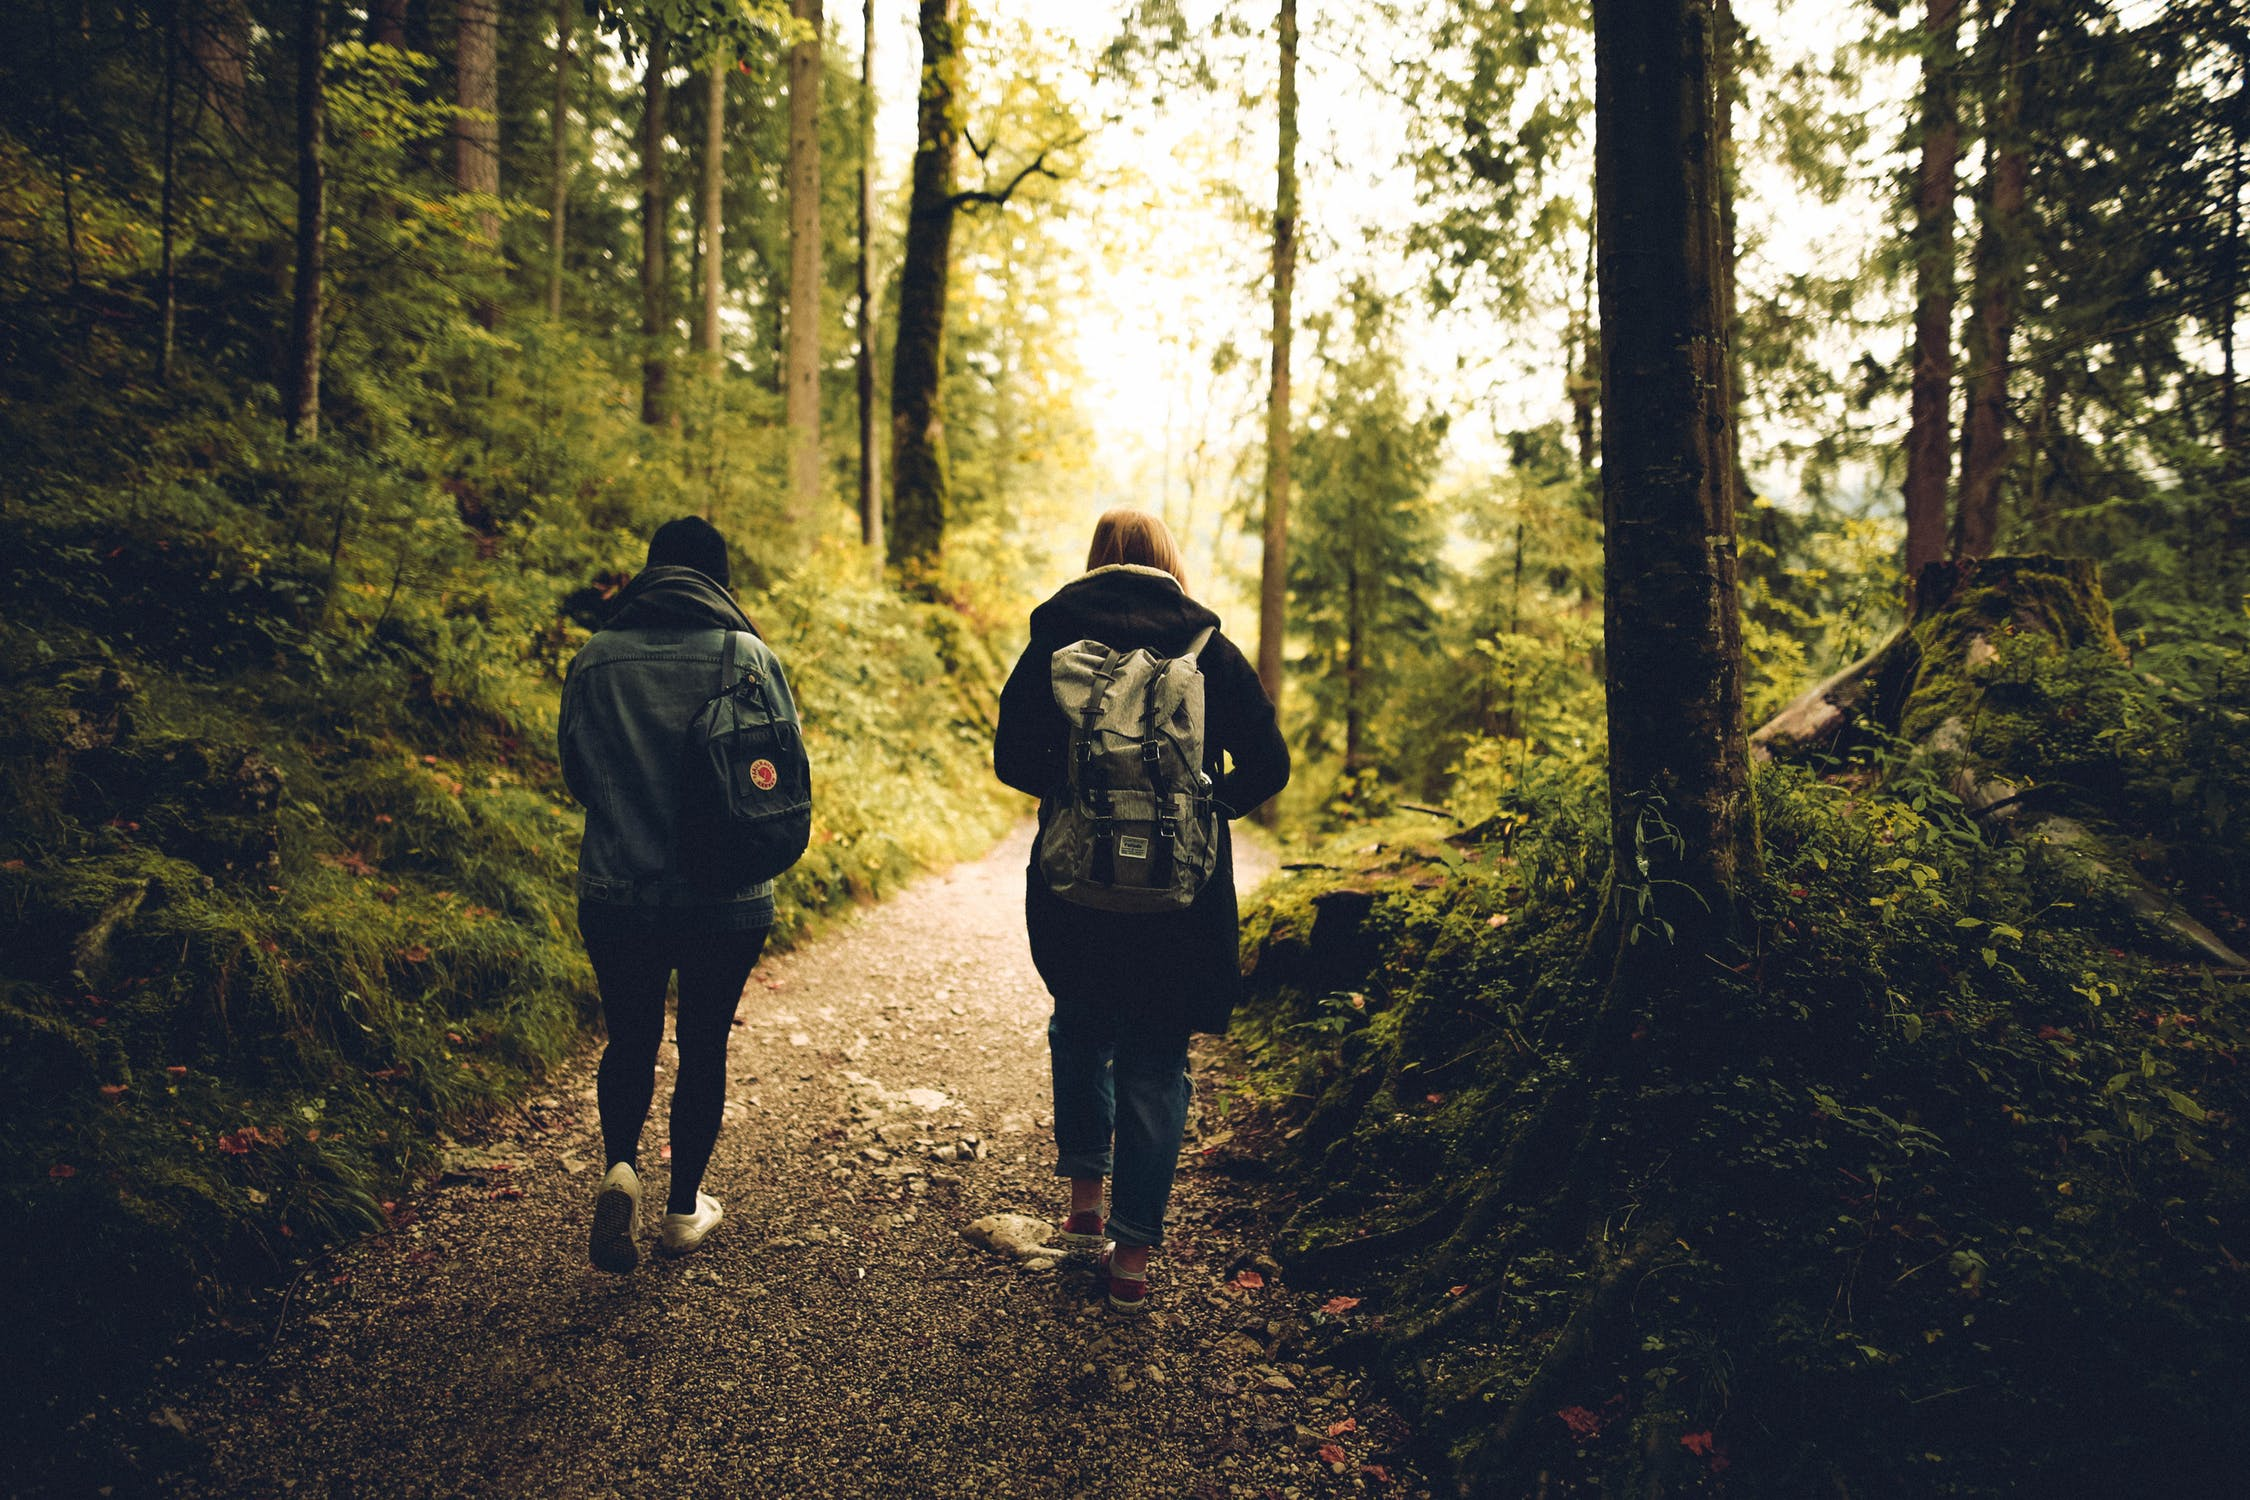 Two people with backpacks walking through lush green woods